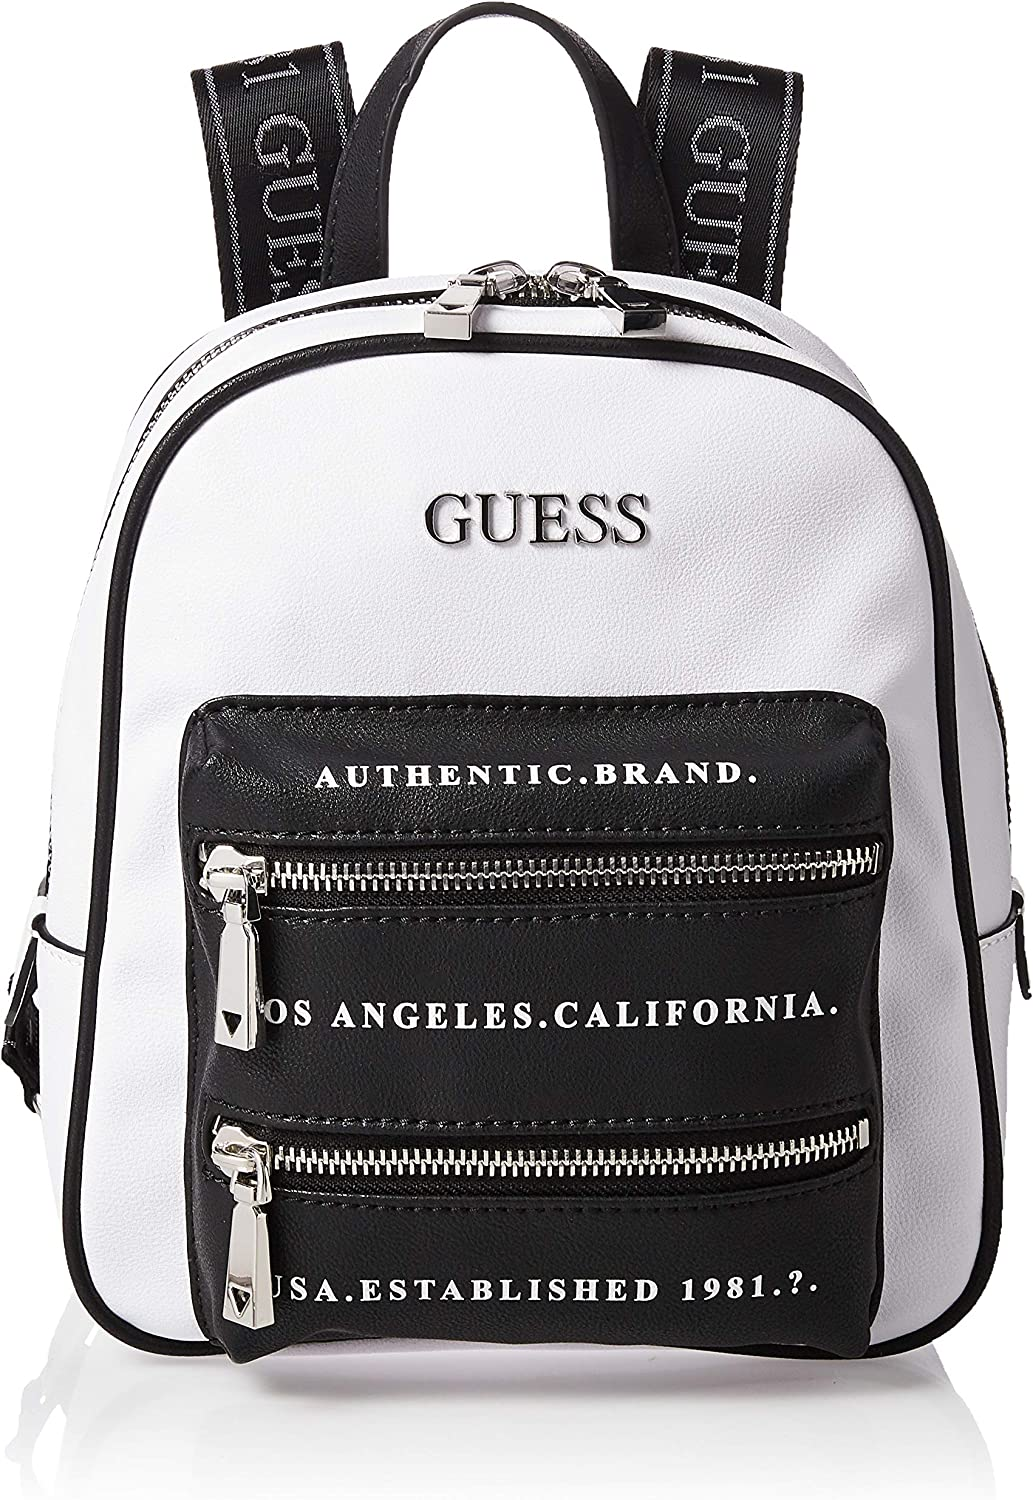 GUESS Women's Backpack